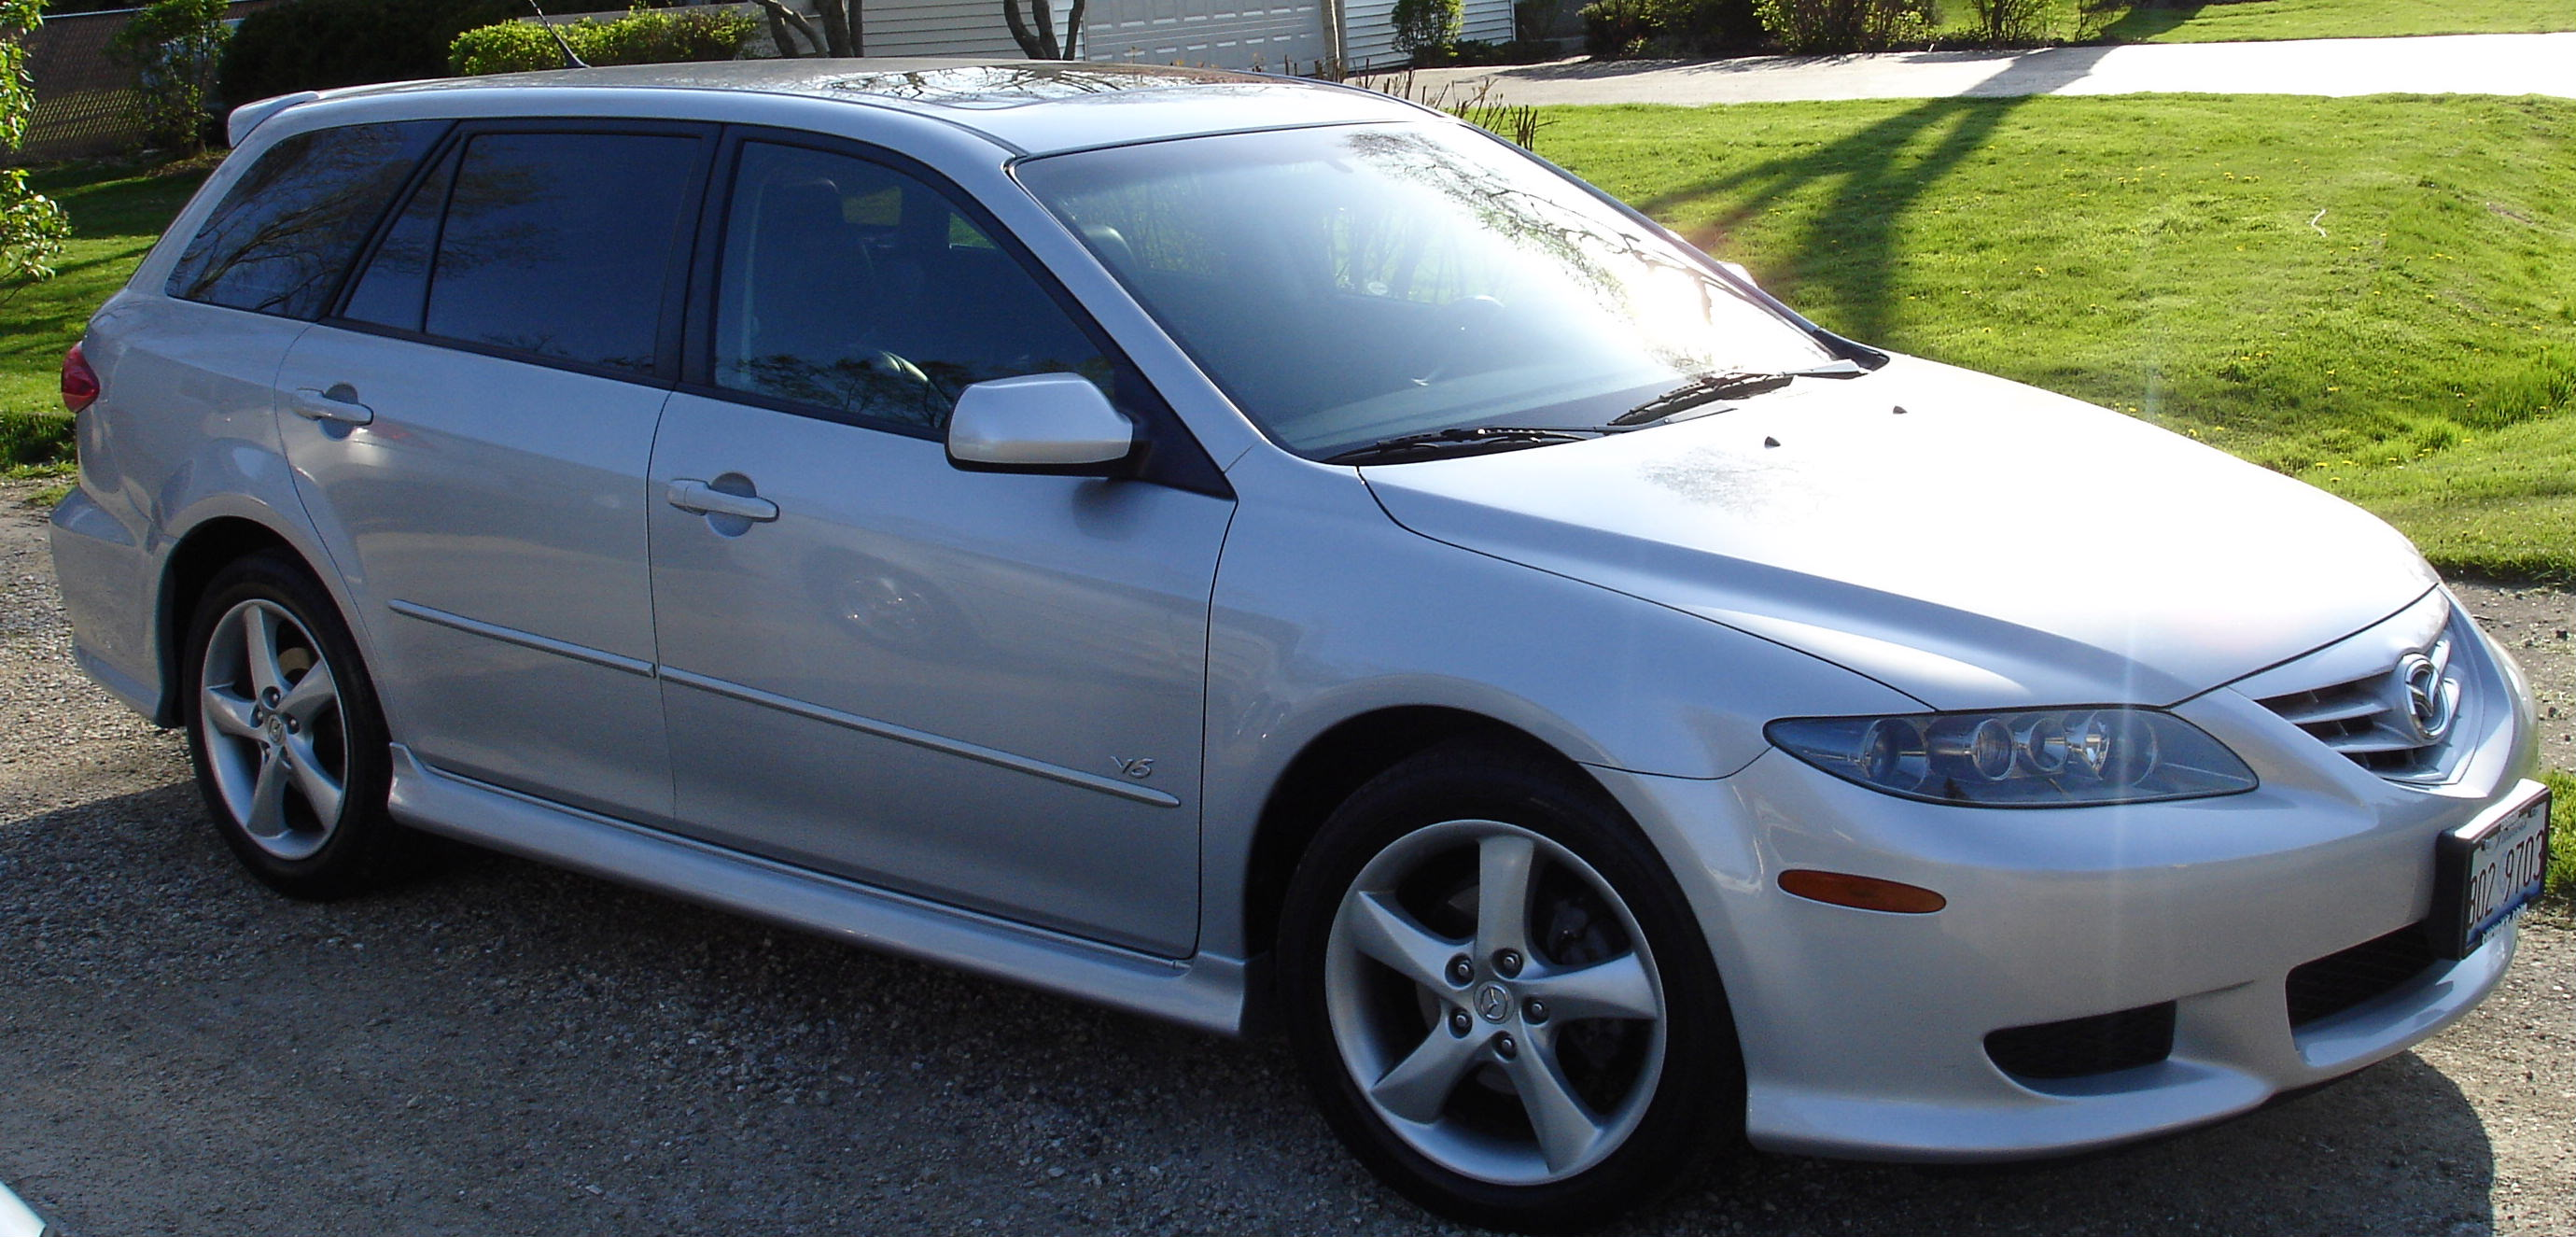 2004 Mazda Mazda 6 sport wagon – pictures, information and specs